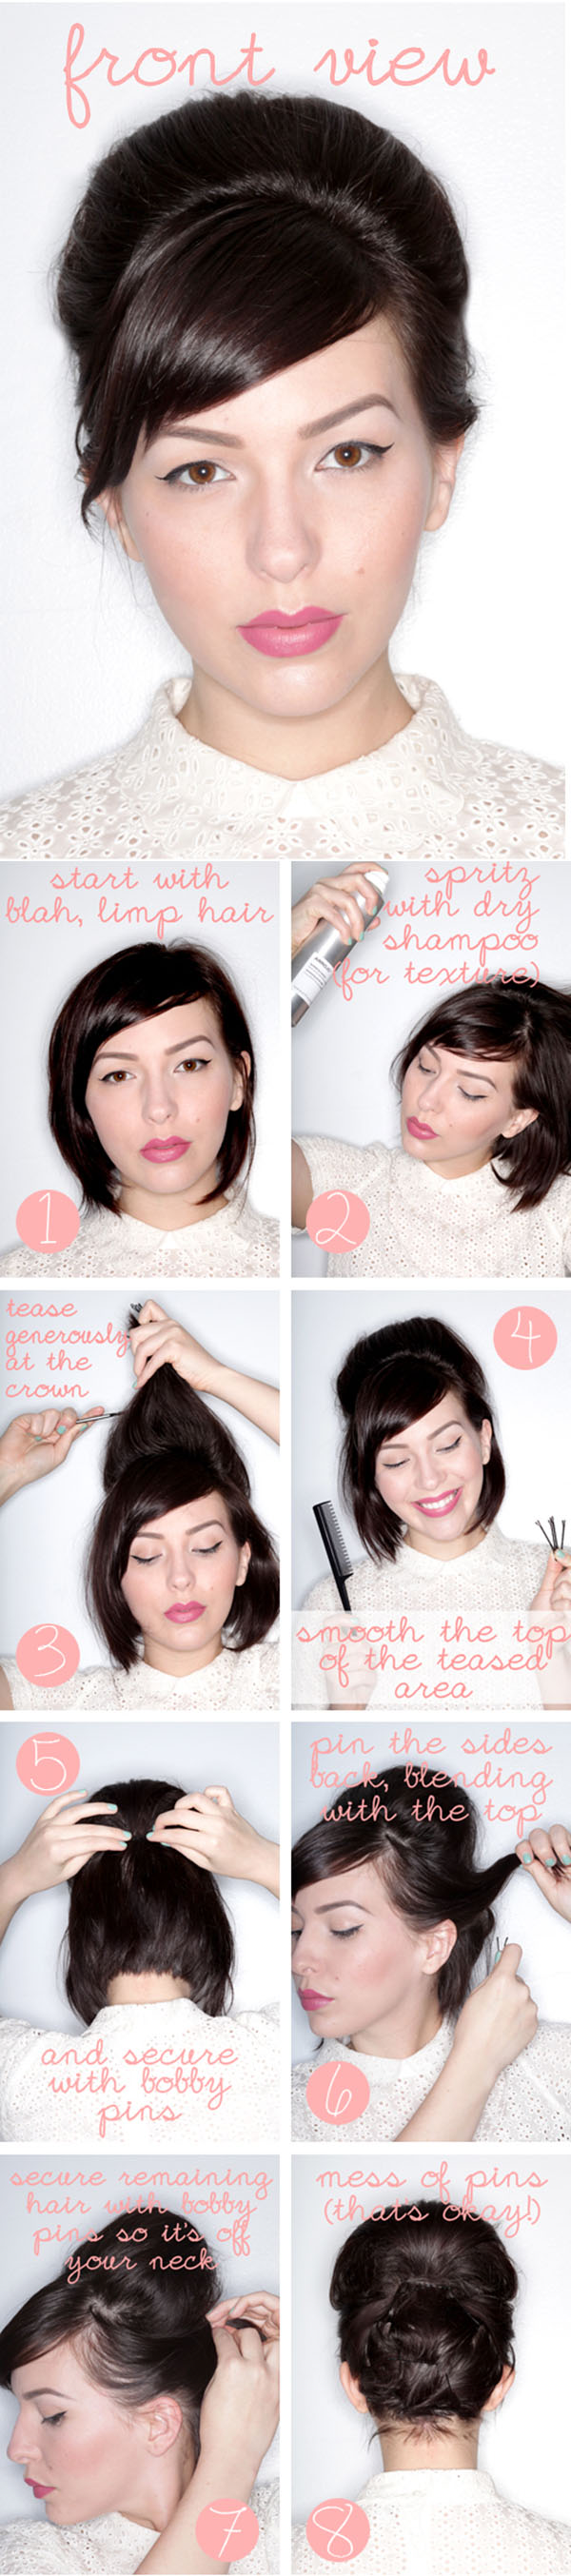 pin up hairstyles for short natural hair photo - 2